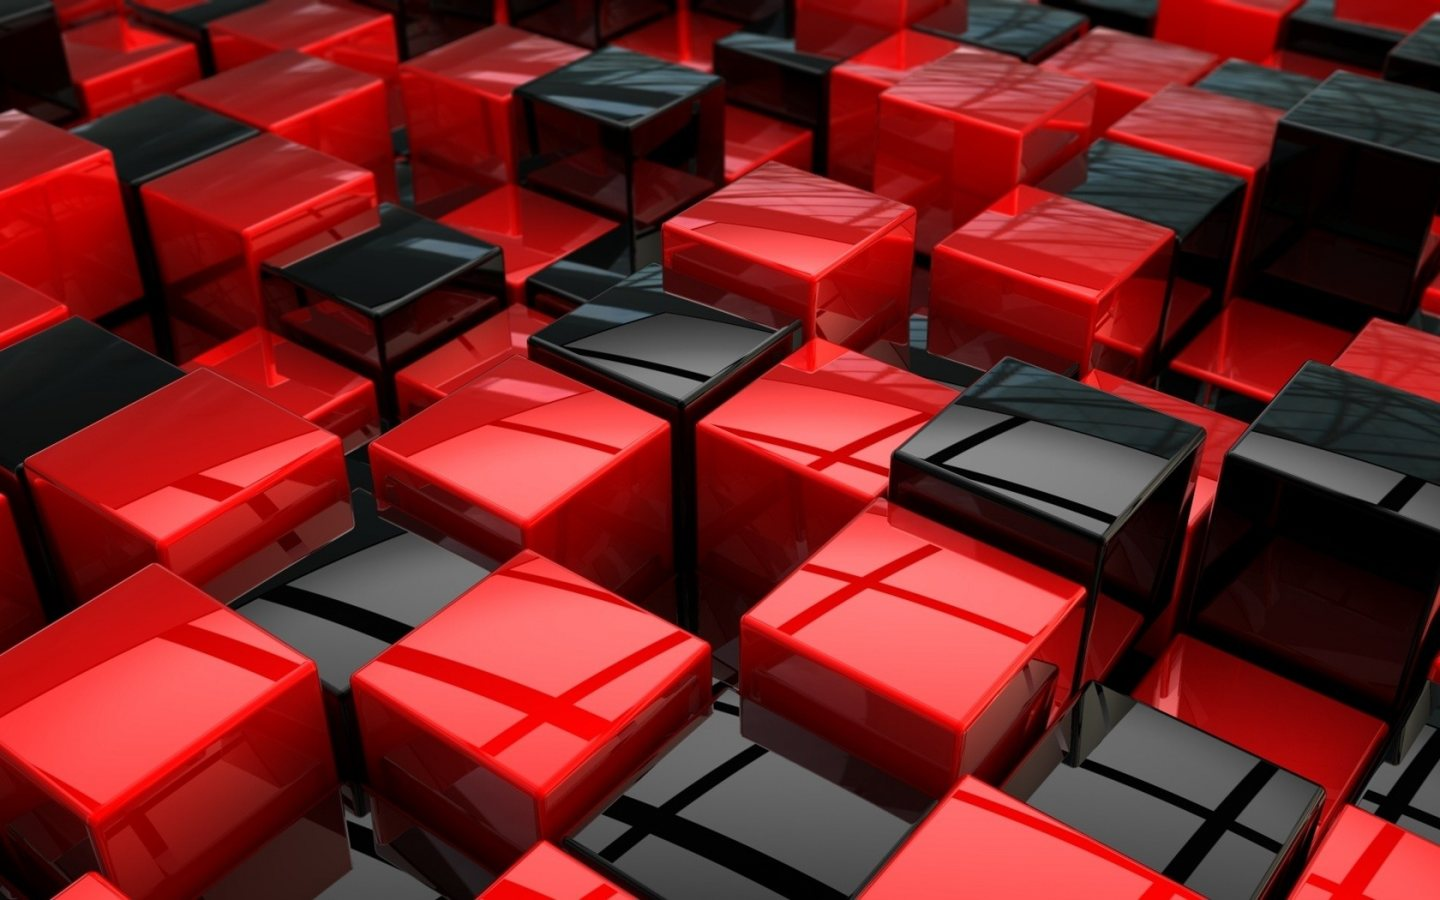 Cool Red And Black Wallpapers 9 Background Wallpaper